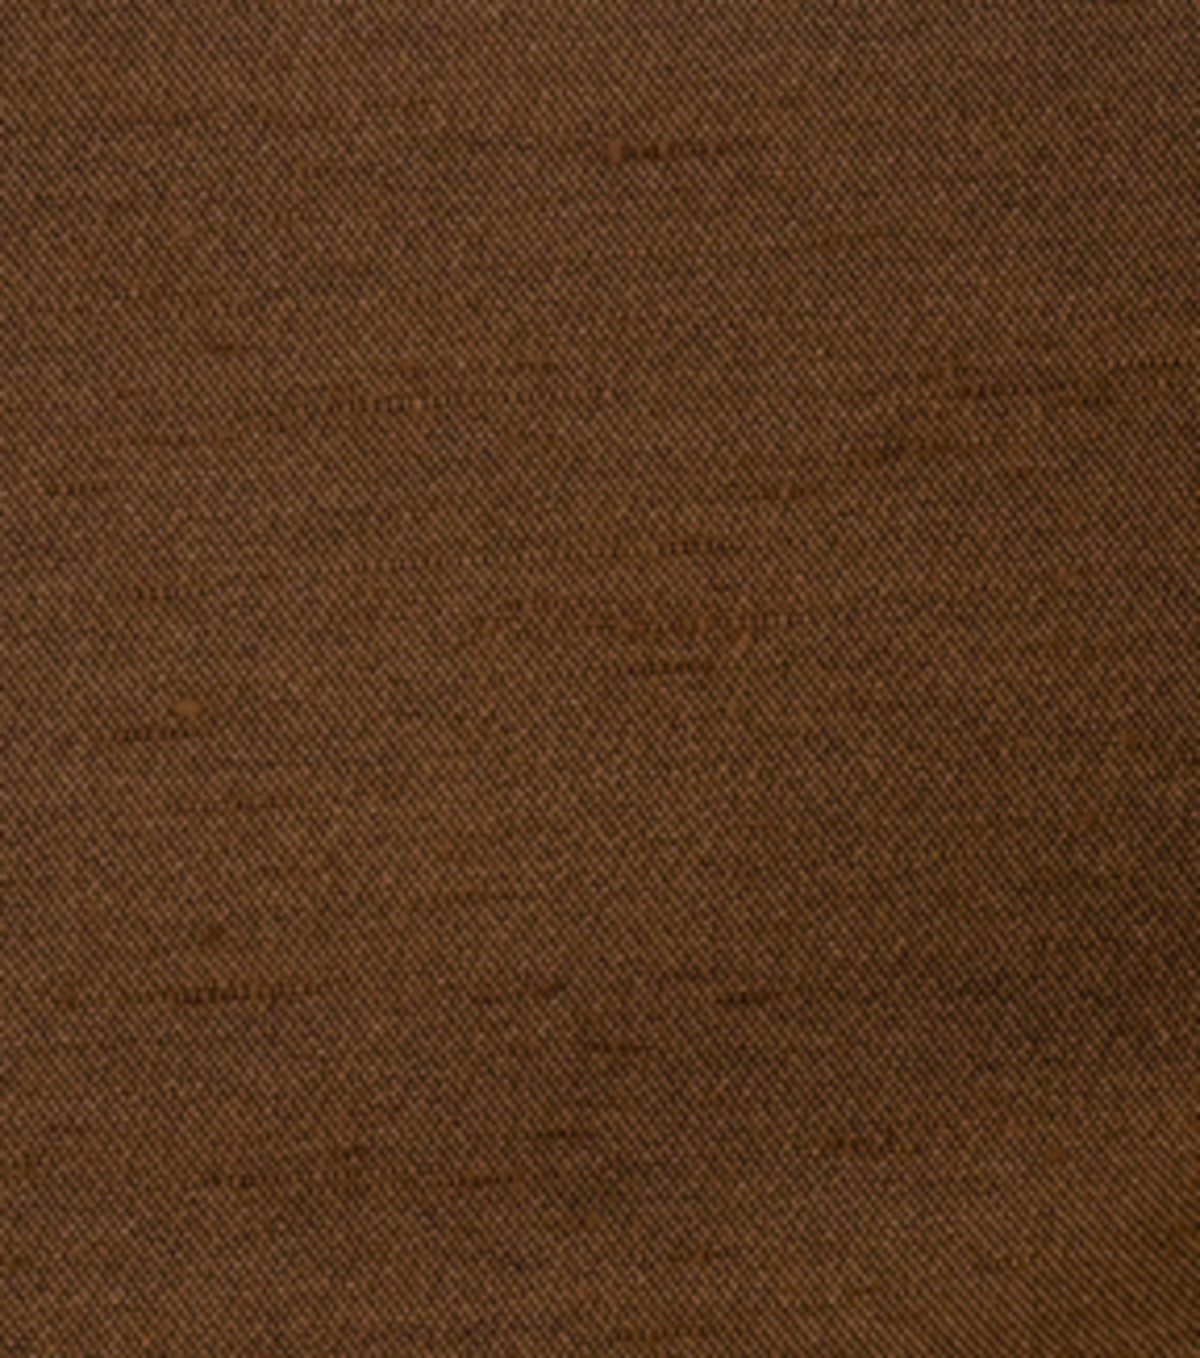 Home Decor 8\u0022x8\u0022 Fabric Swatch-Signature Series Antique Satin Coffee